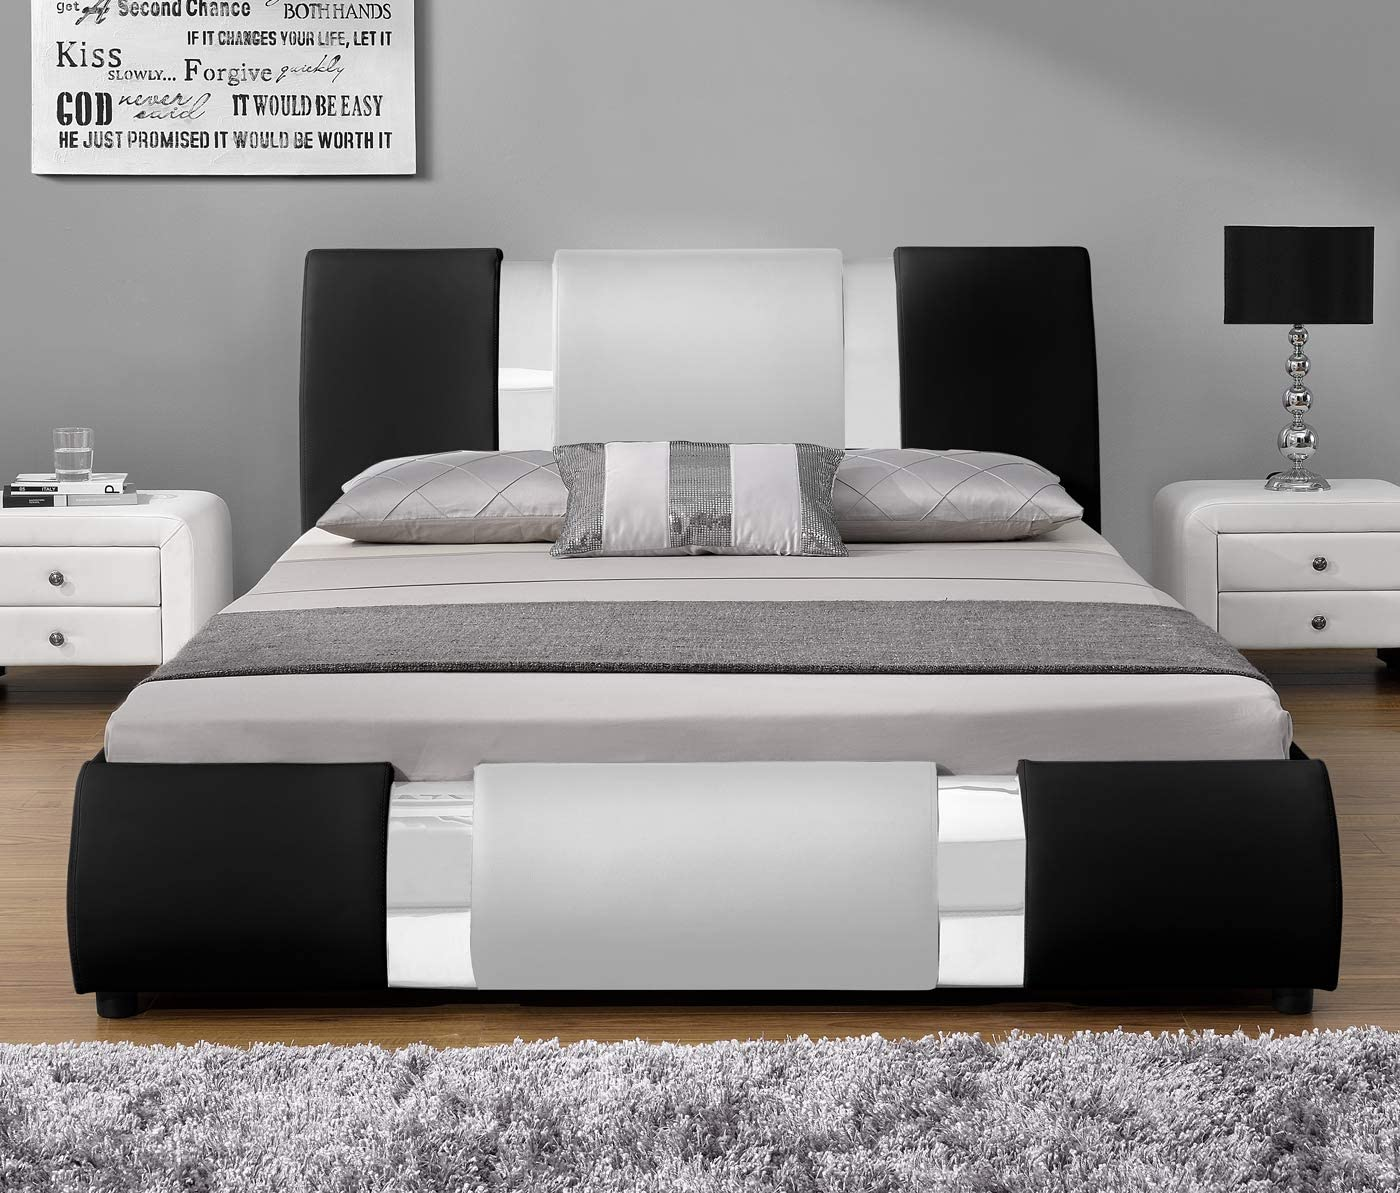 Amolife Iron Piece Bed Frame//Deluxe Solid Upholstered Modern Bed Frame//Mattress Foundation,Black,Full